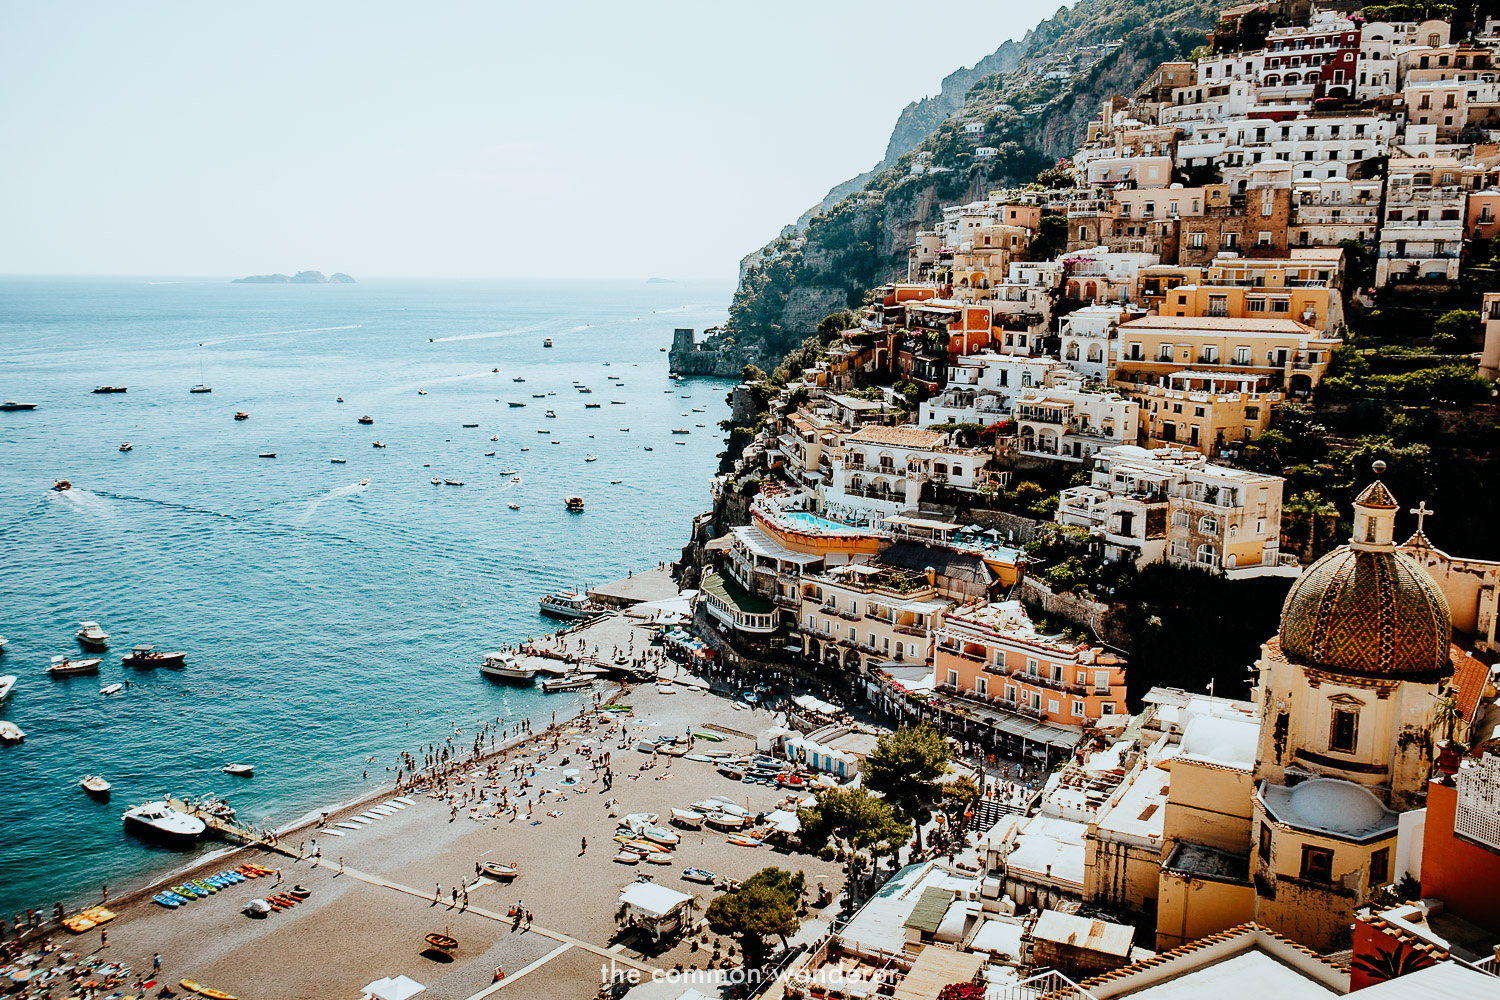 overlooking the beautiful town of Positano, Italy